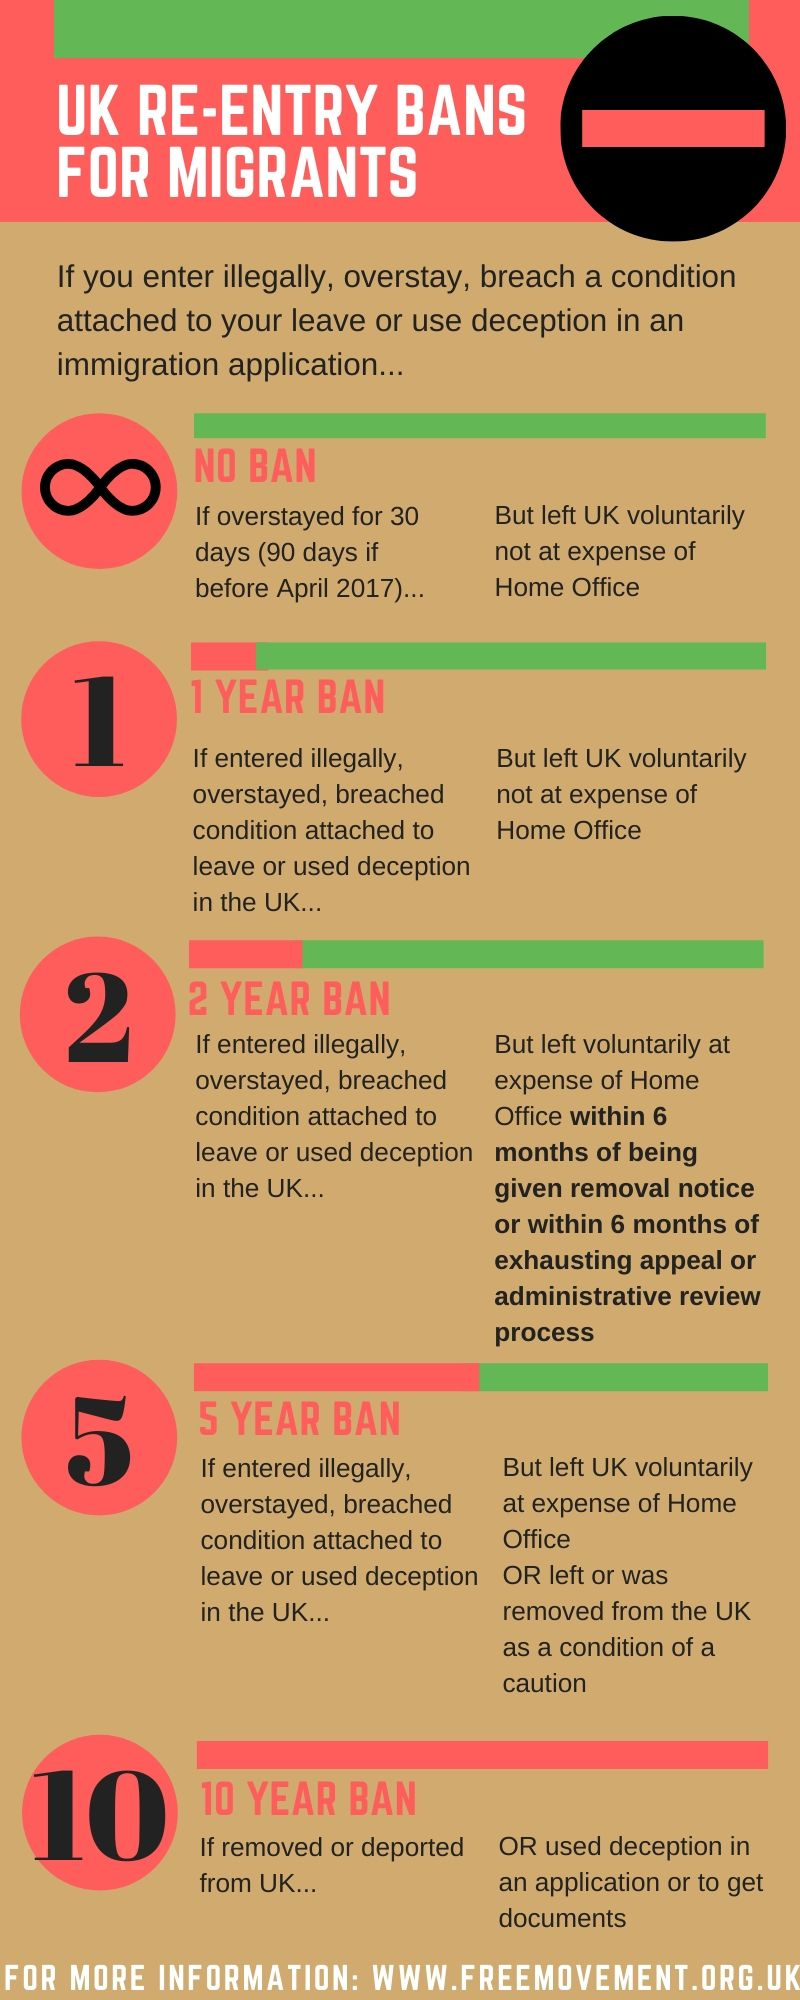 General grounds for refusal: understanding re-entry bans | Free Movement